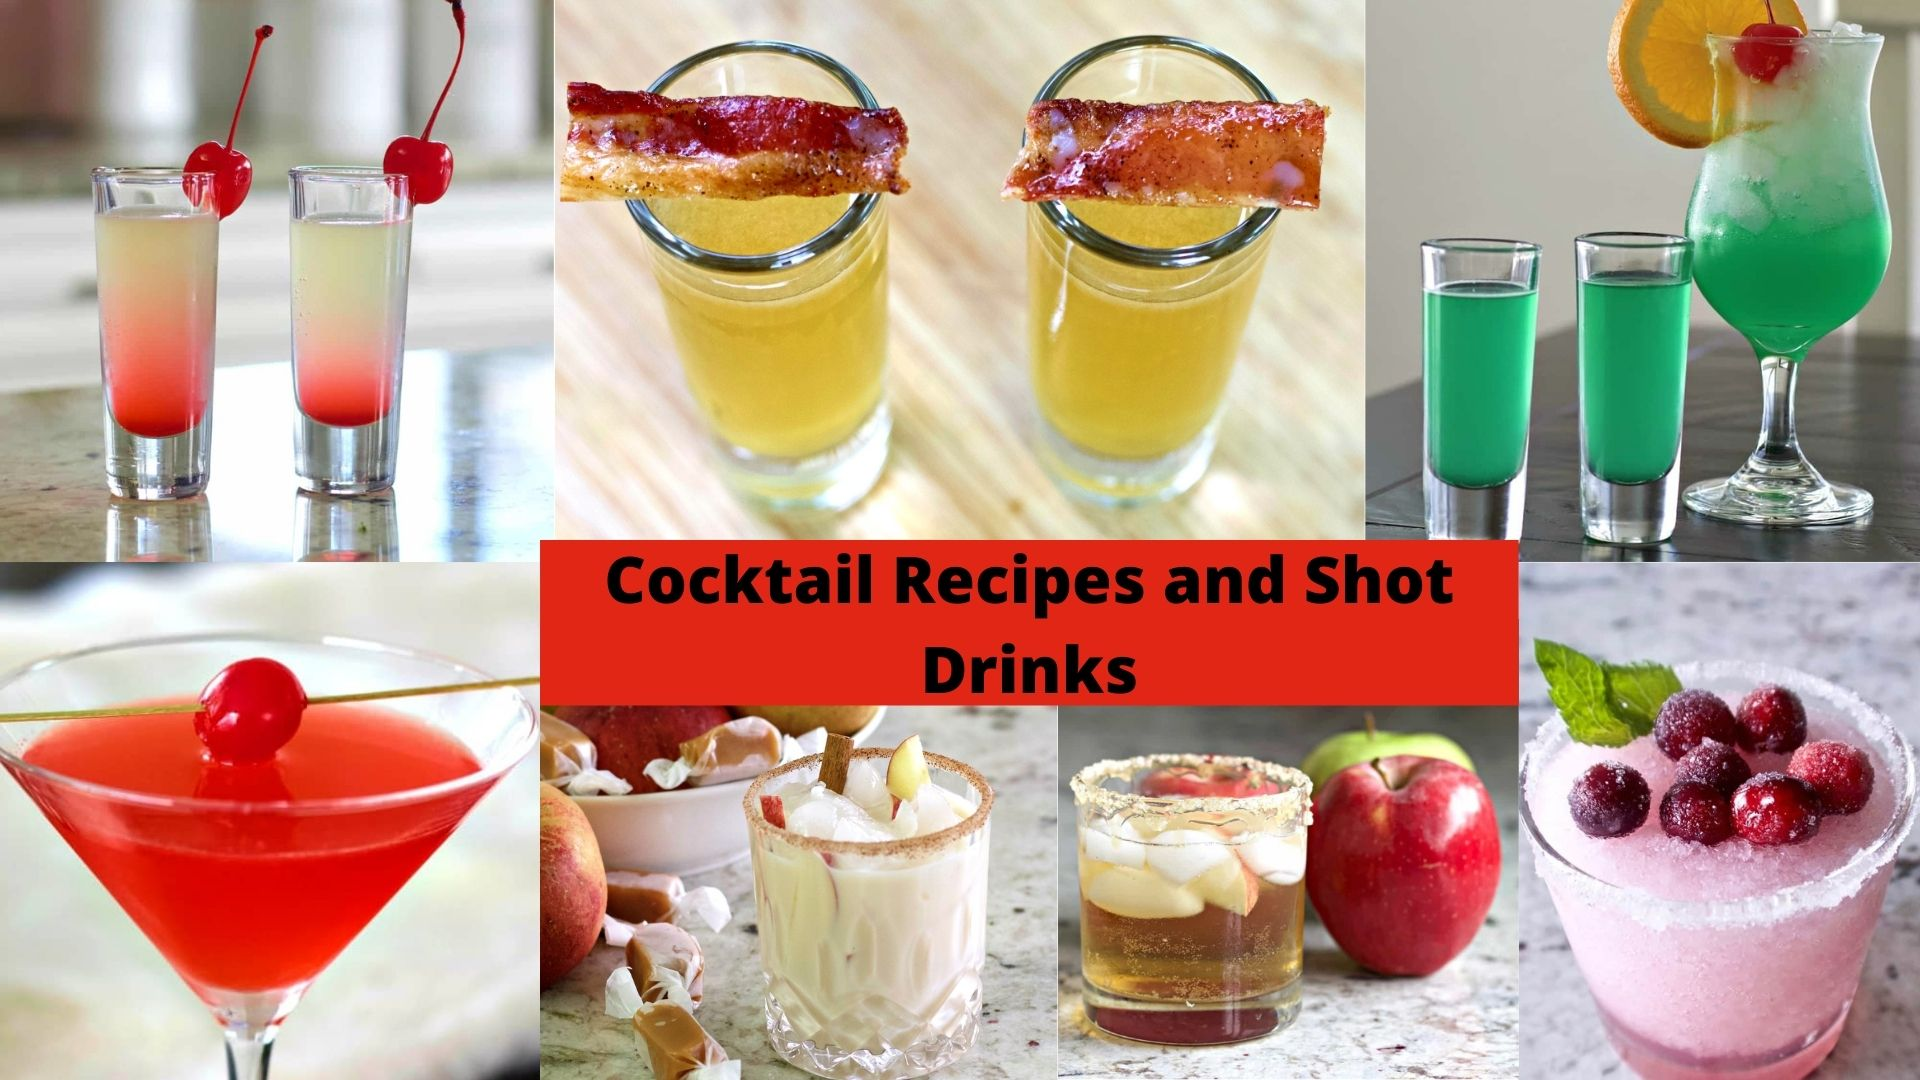 Cocktails and Shot drinks recipes